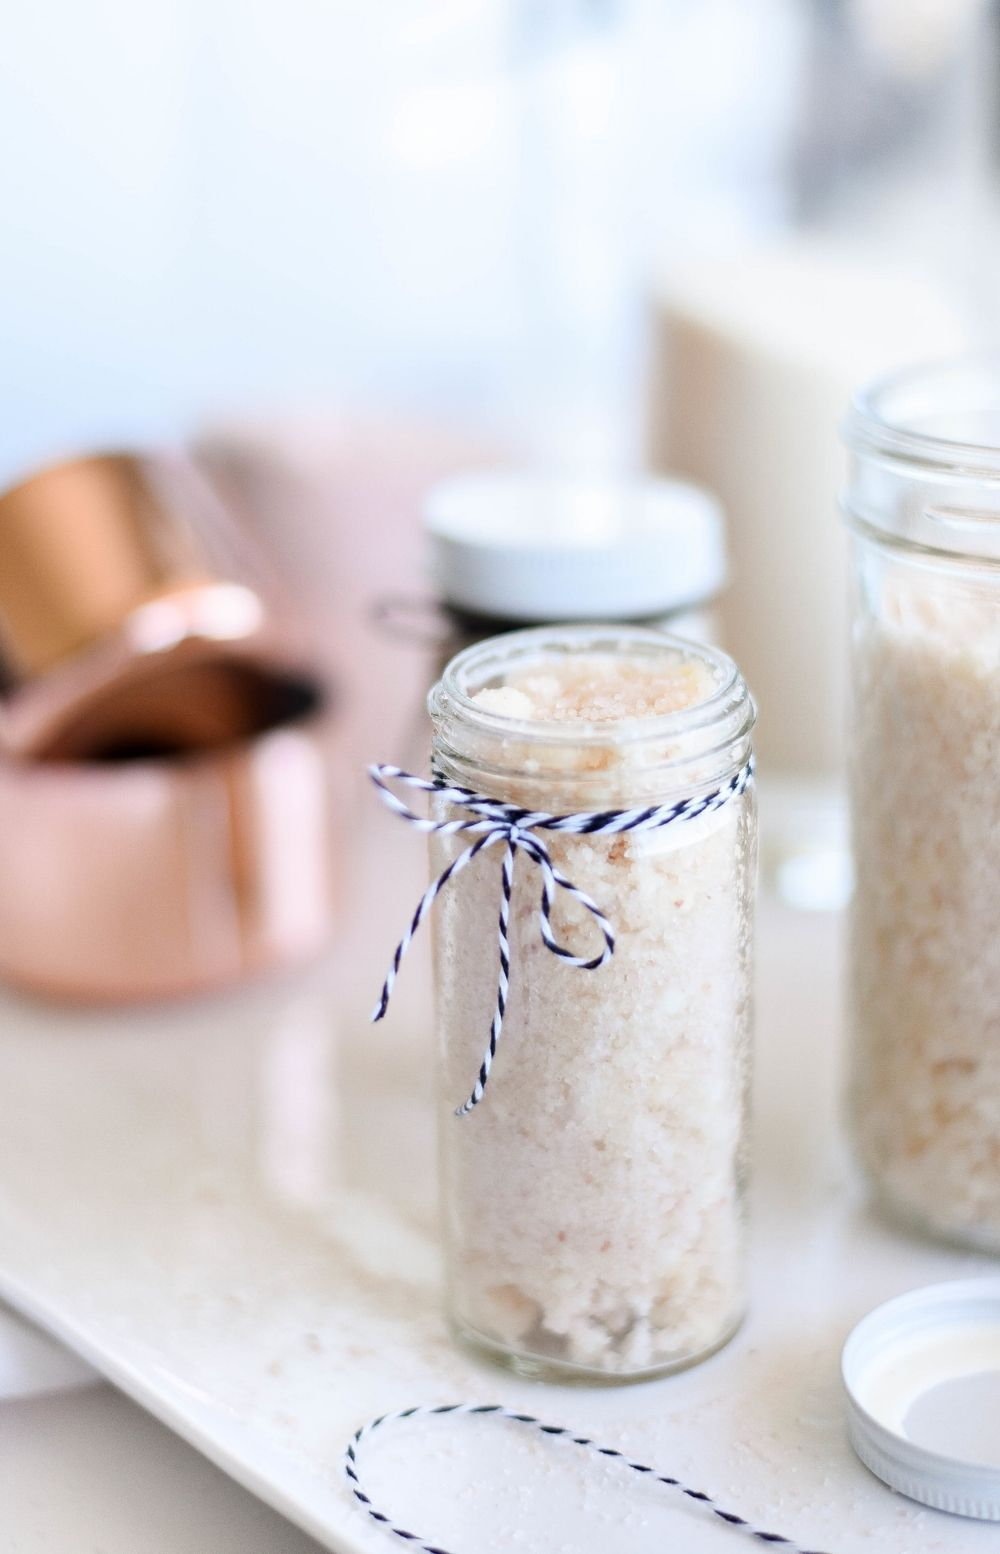 DIY Coconut Butter Body Scrub with Essentail Oils (With